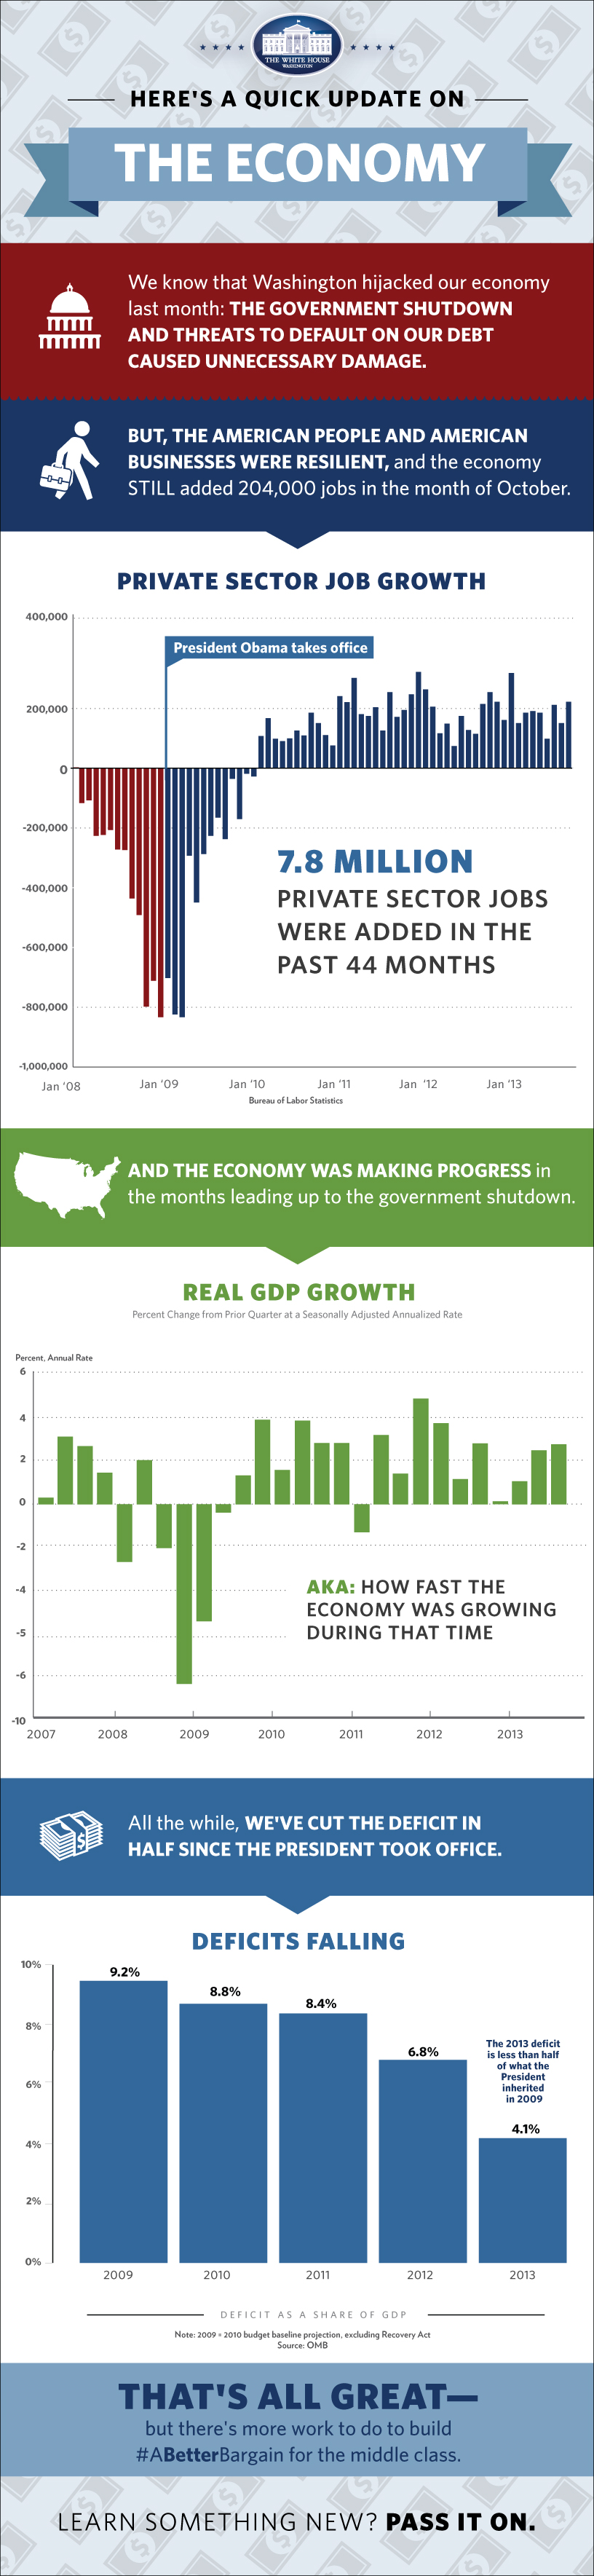 The economy is growing steadily. Here's what that looks like, in 3 charts.